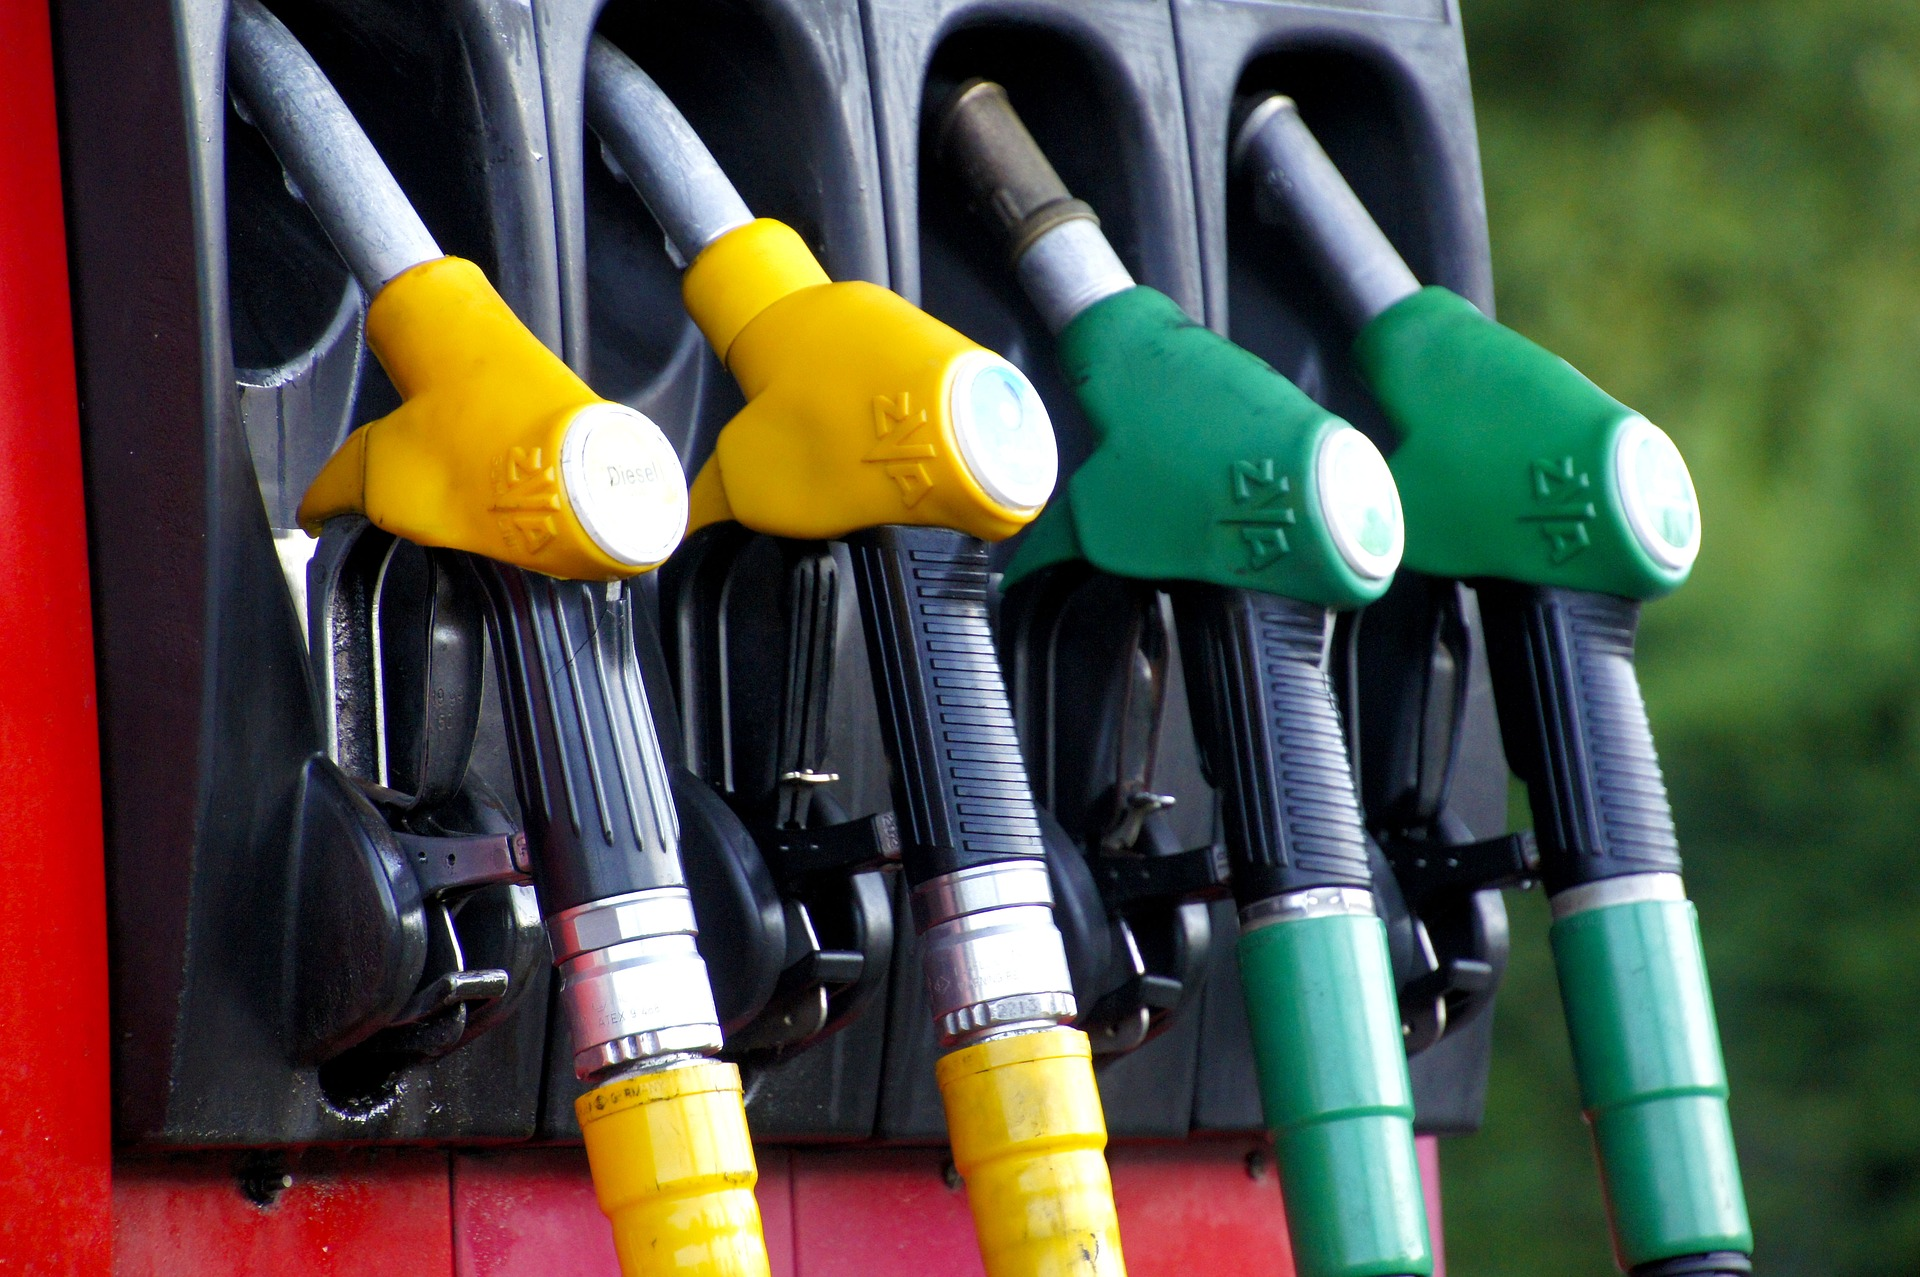 Expect to pay 117.9 at the pumps in Sudbury to start the work week